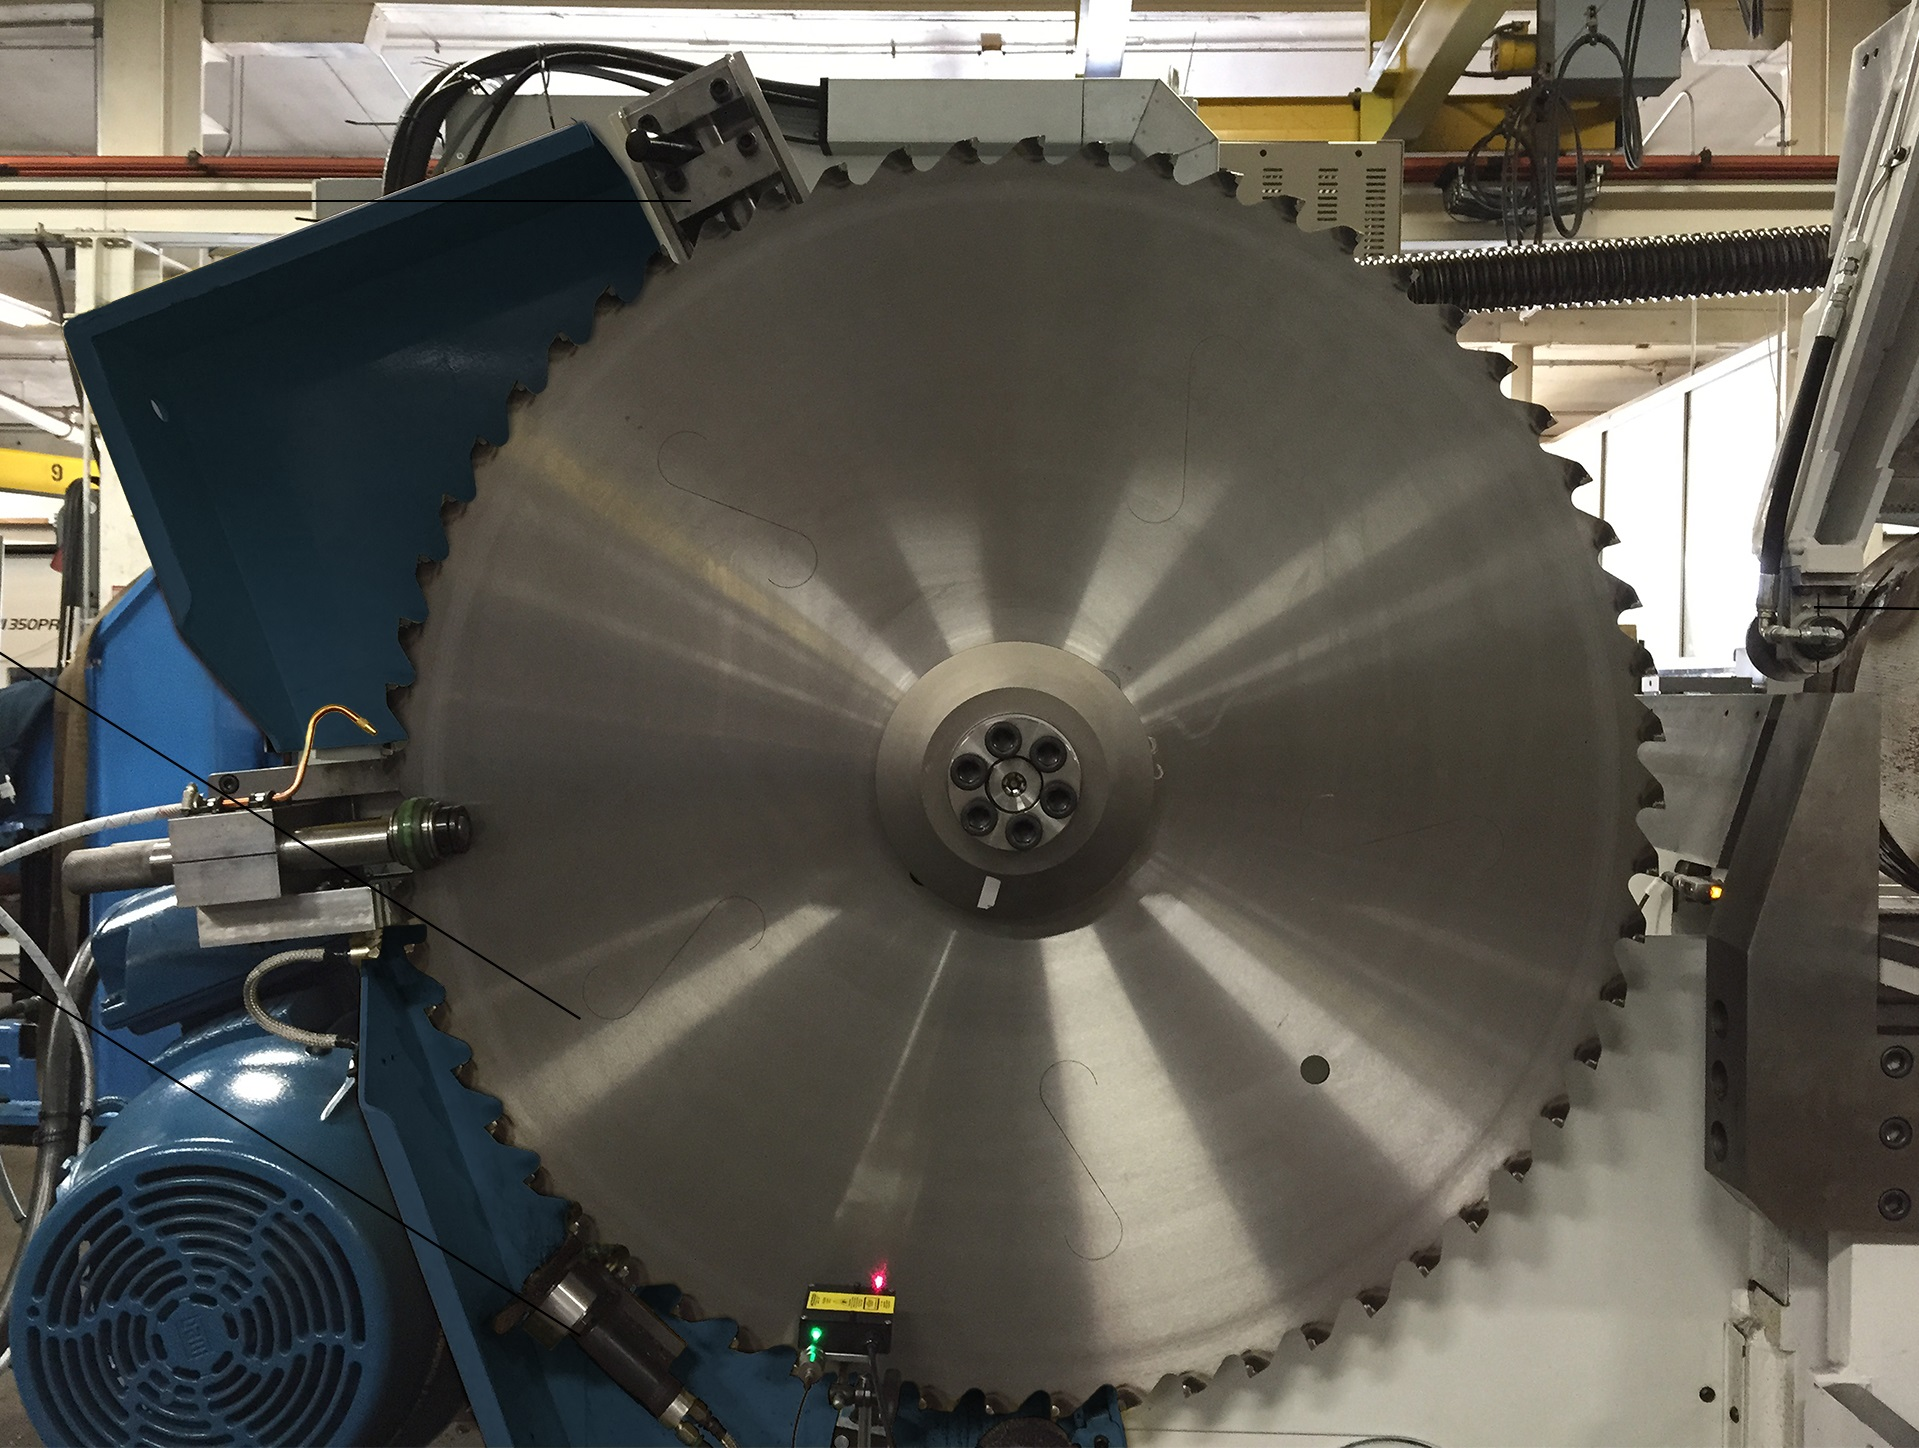 13 issues will destroy high production carbide tipped circular saw these 13 issues will destroy high production carbide tipped circular saw blades keyboard keysfo Image collections